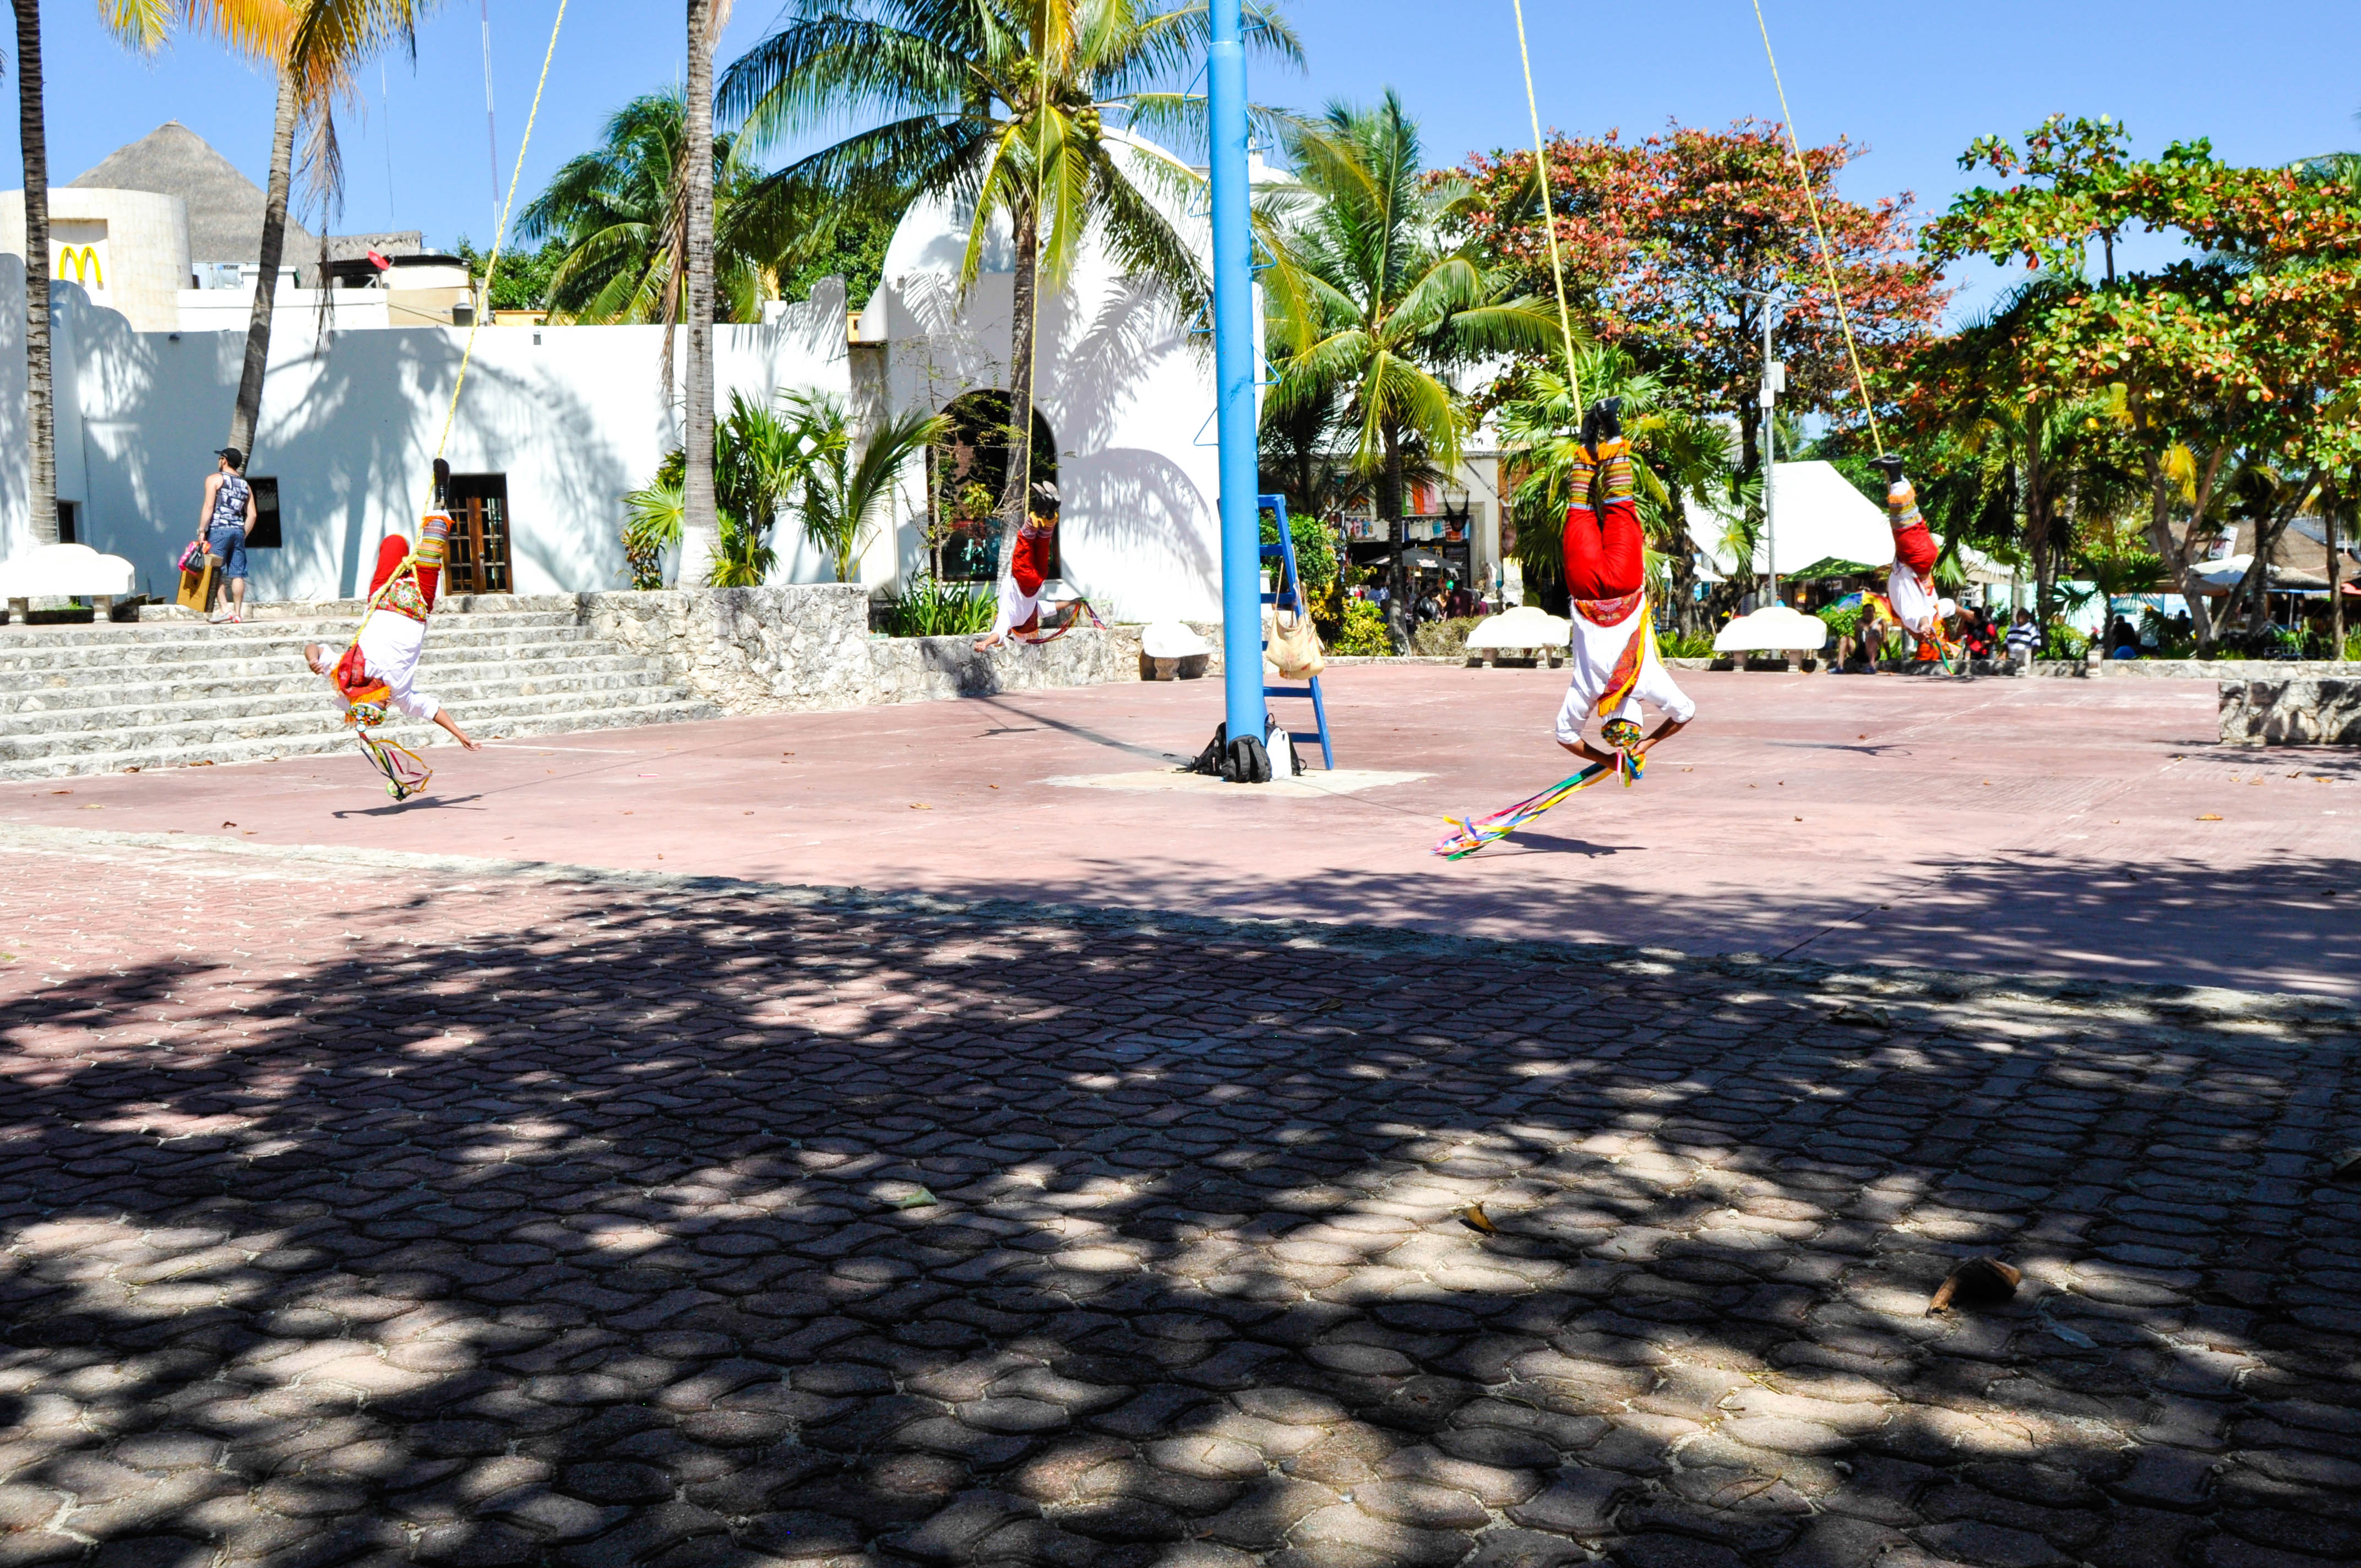 MEXICAN-PEFORMANCE-MEXICO-PLAYA-DEL-CARMEN-TRAVEL-BLOG-HAUTEMOMMIE